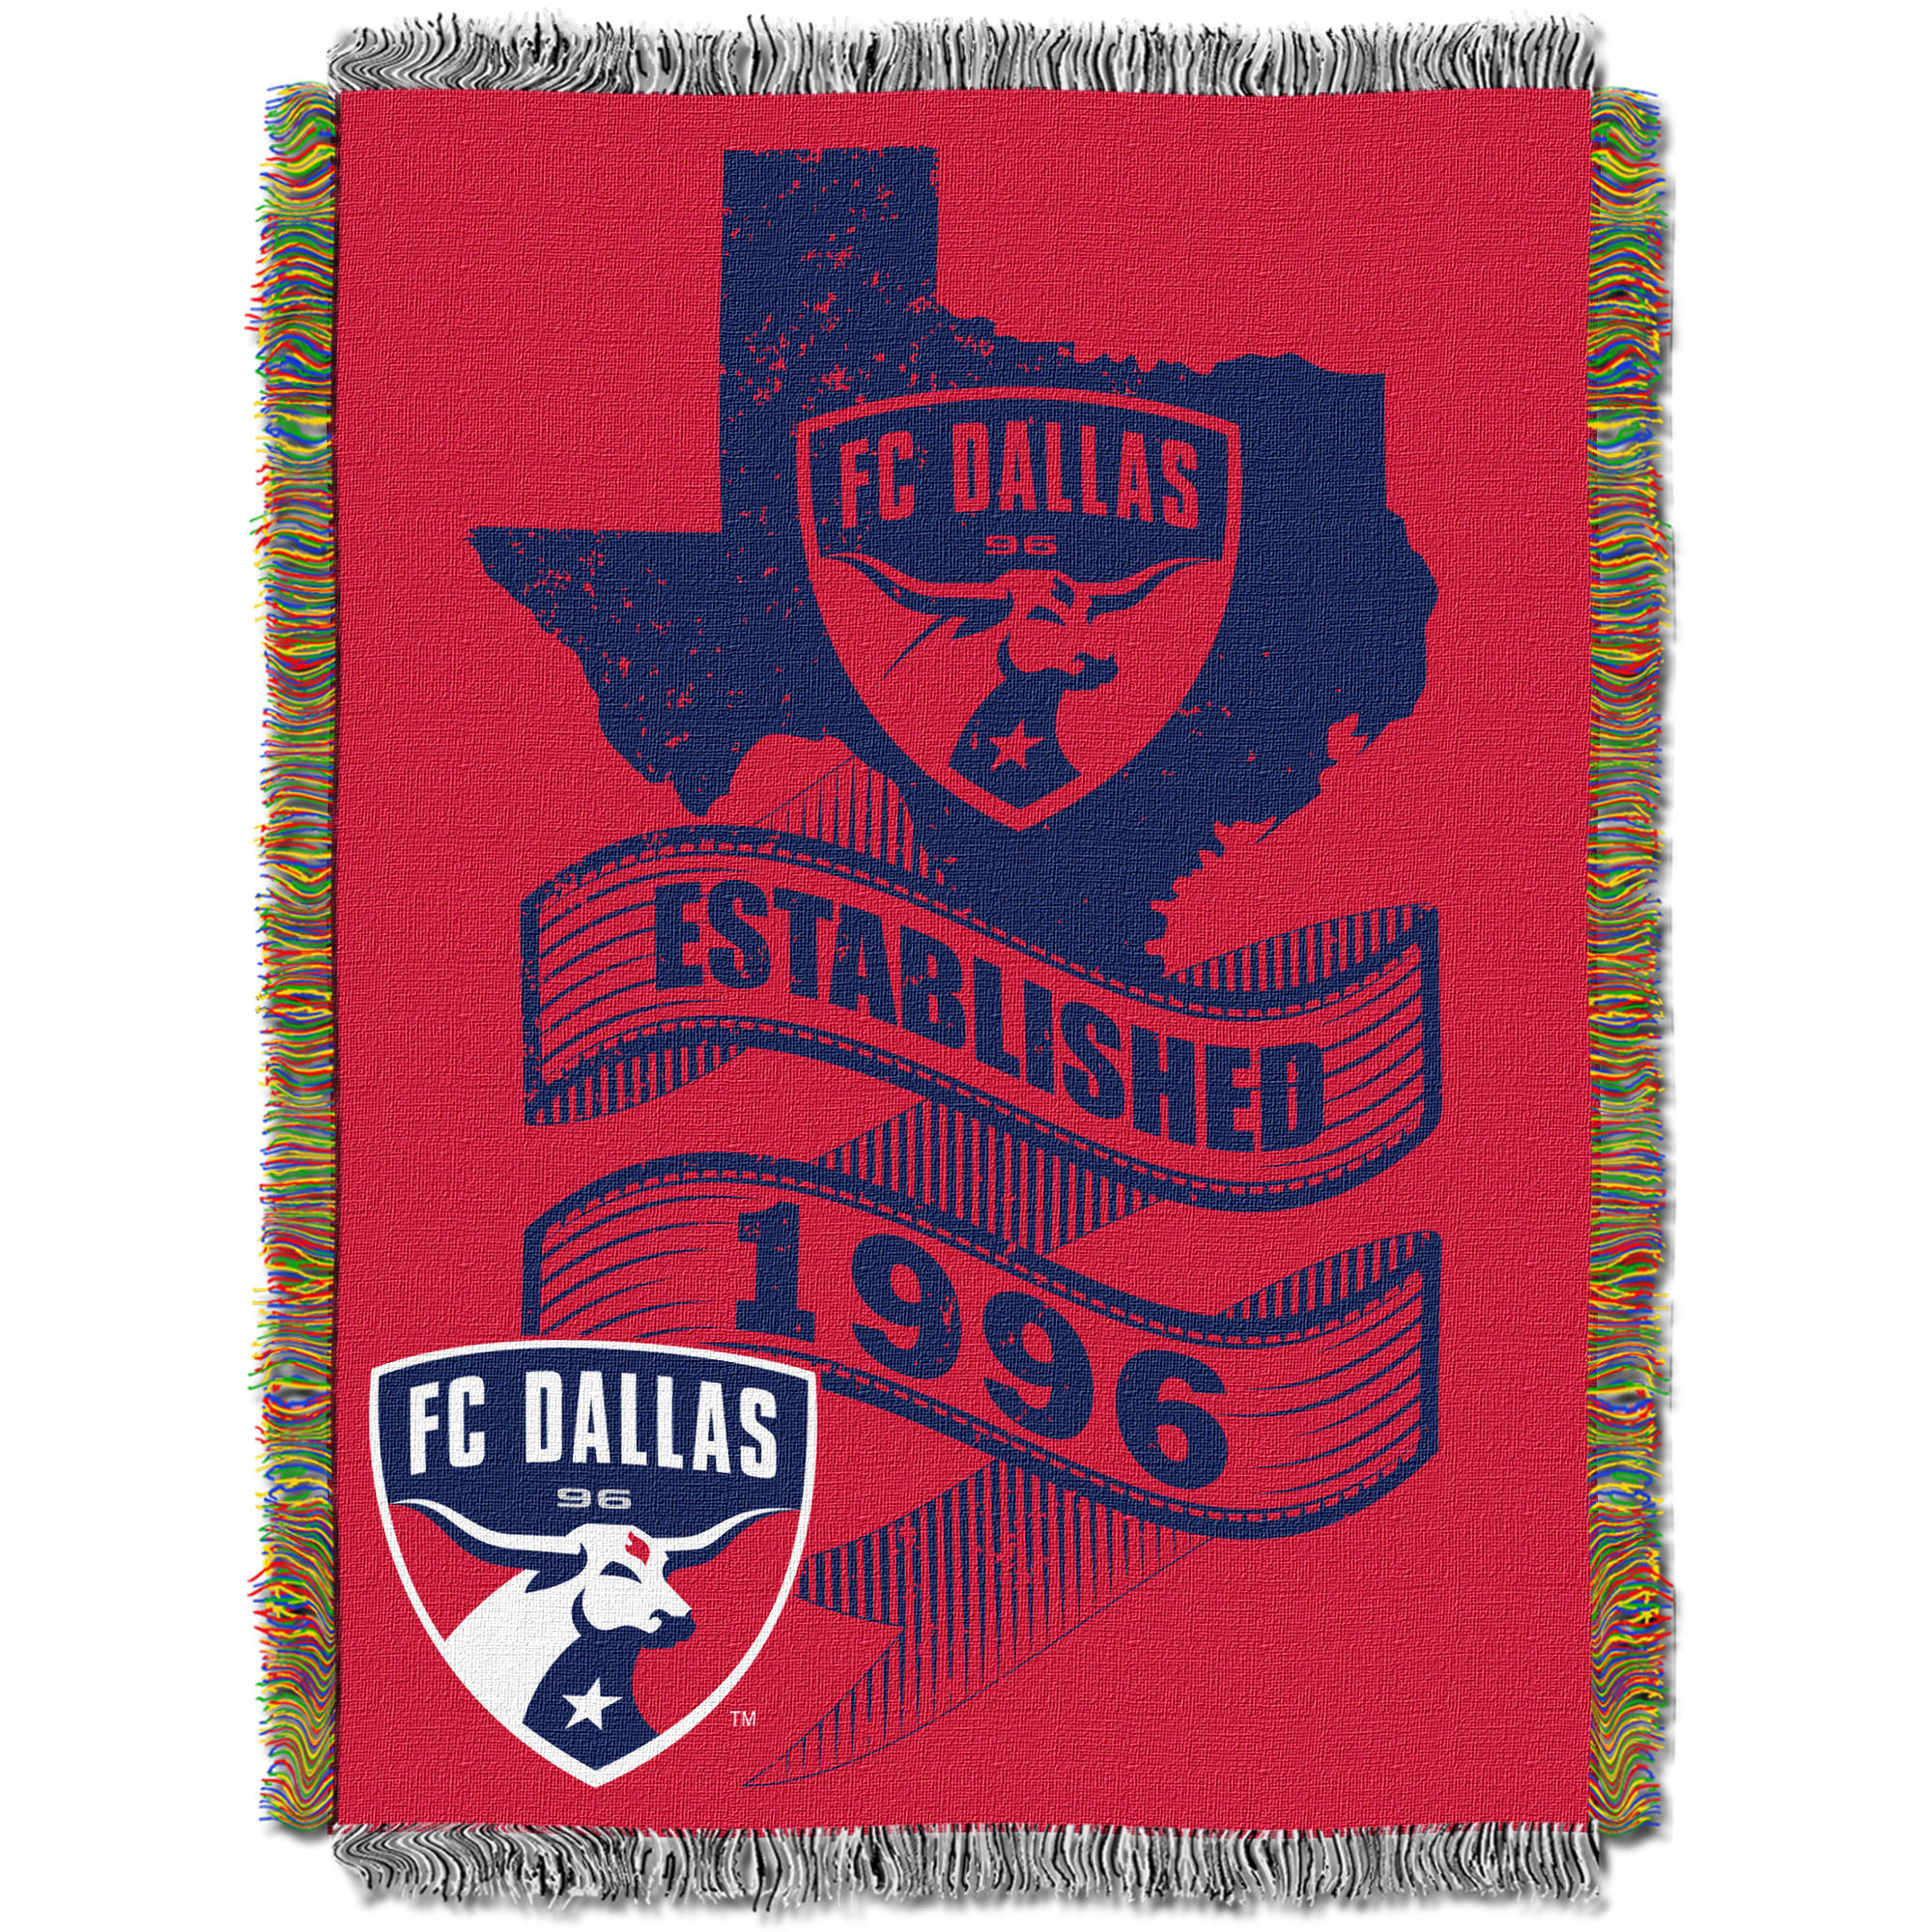 "MLS Dallas FC Handmade 48"" x 60"" Woven Tapestry Throw"